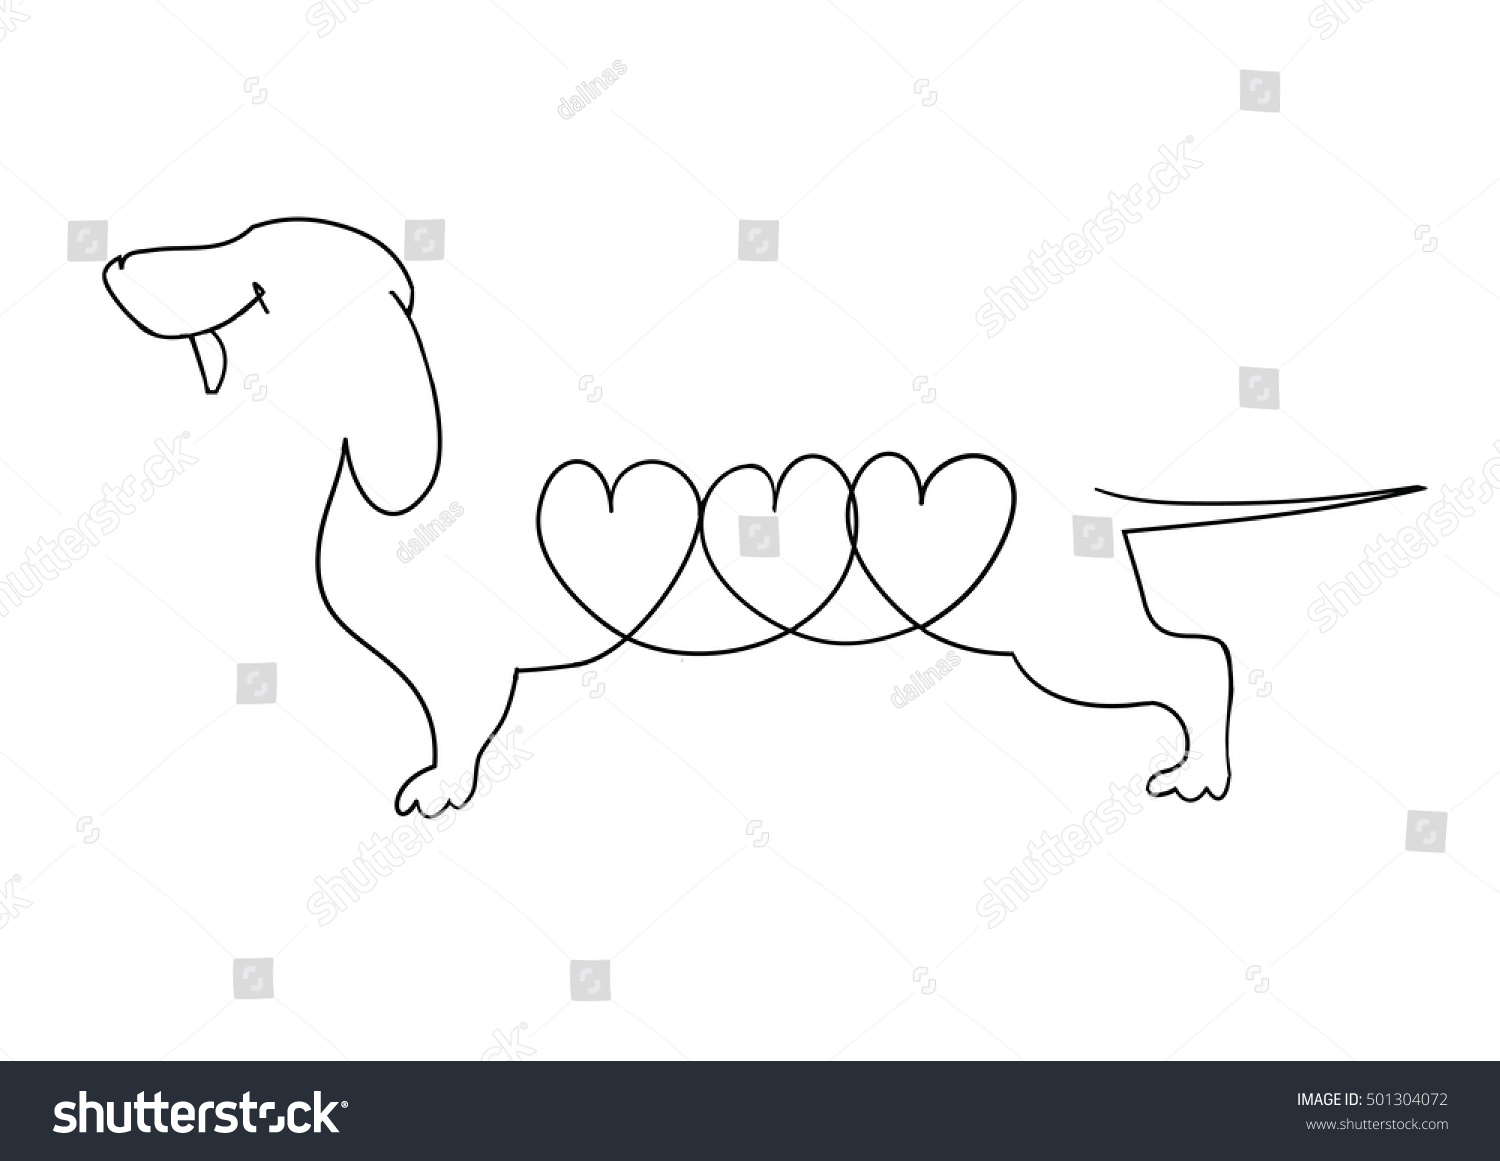 Dachshund Vector Illustration Drawn Freehand Original Linear Image